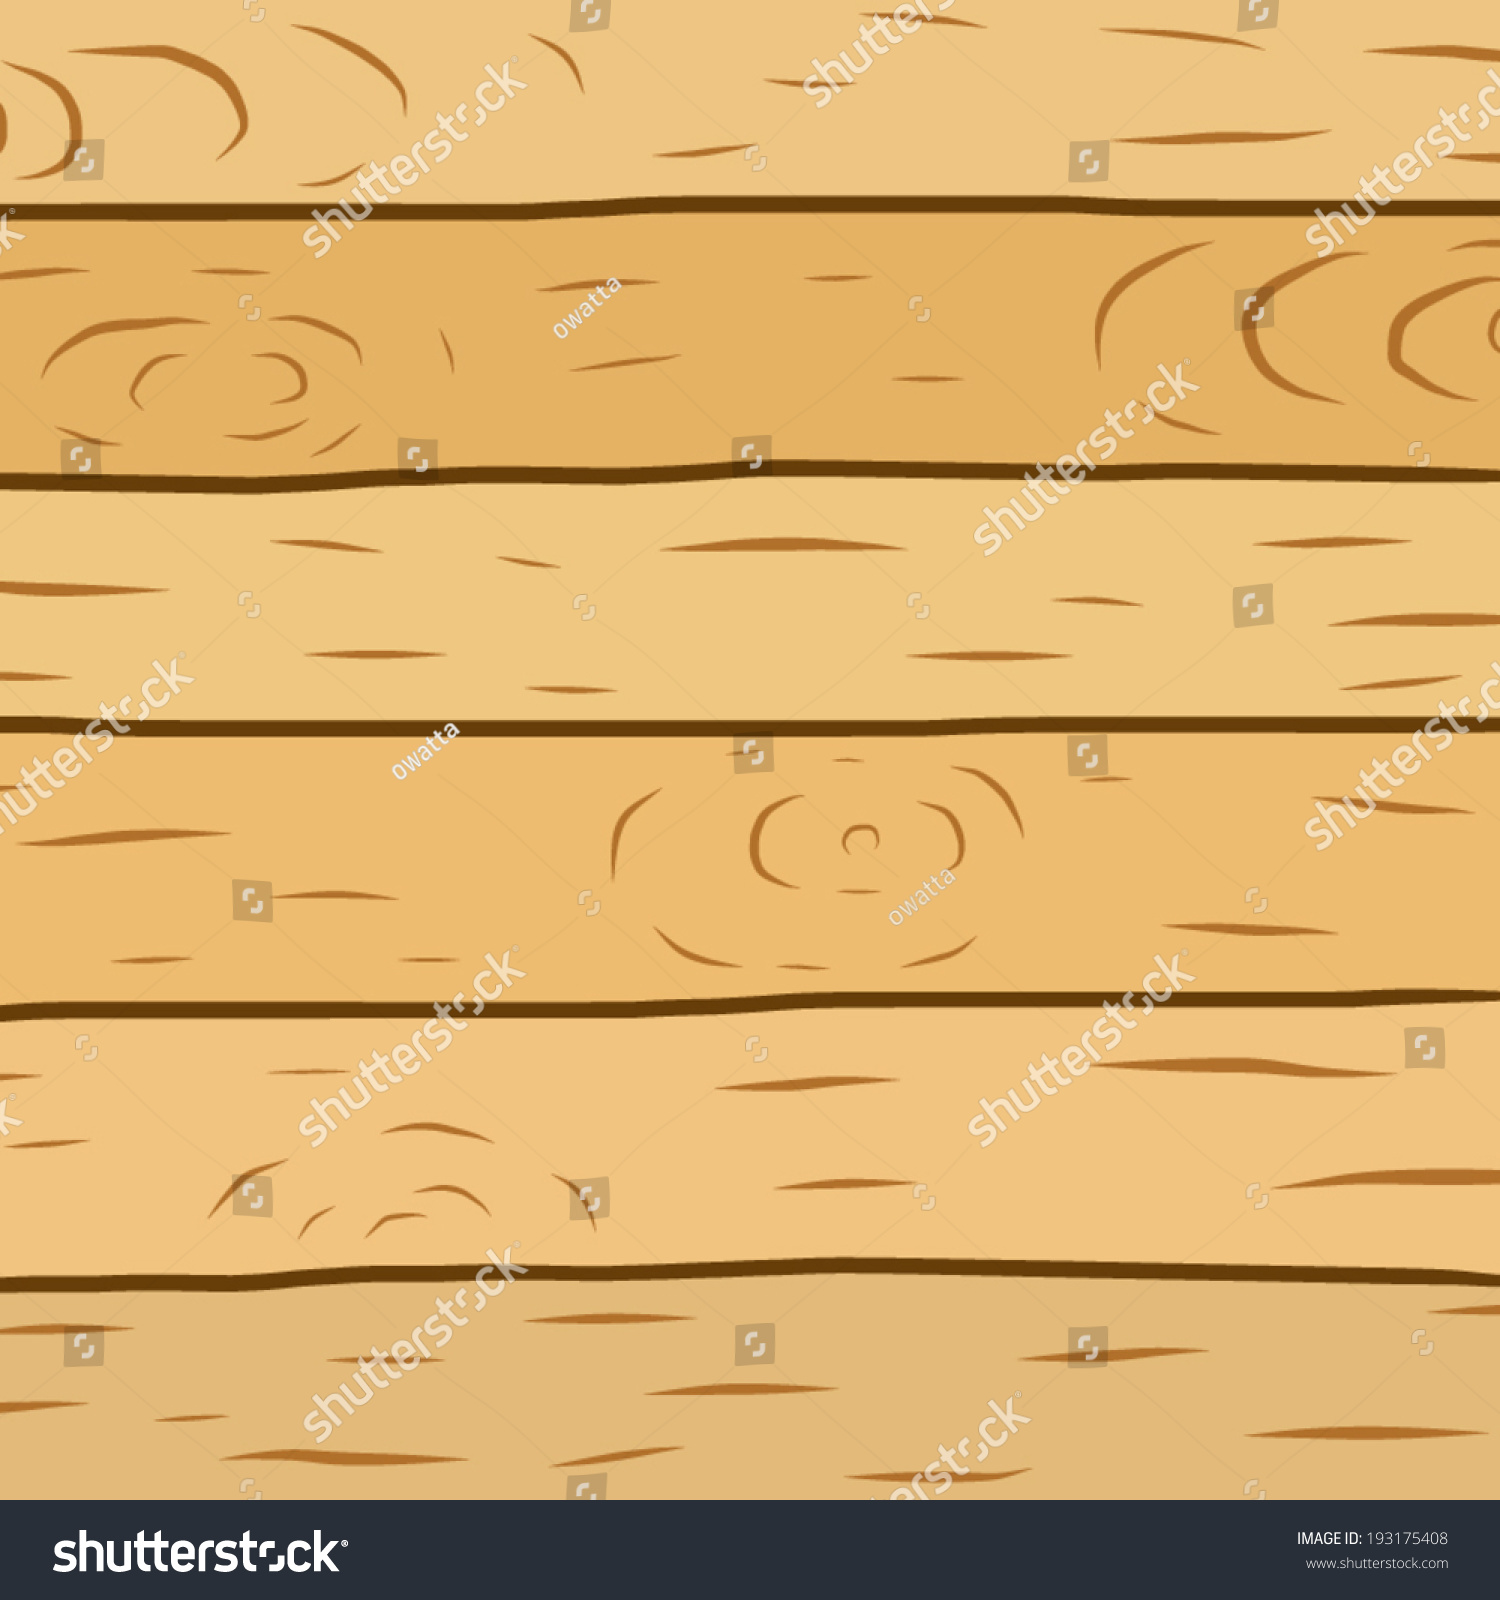 Wood plank brown texture background cartoon stock vector